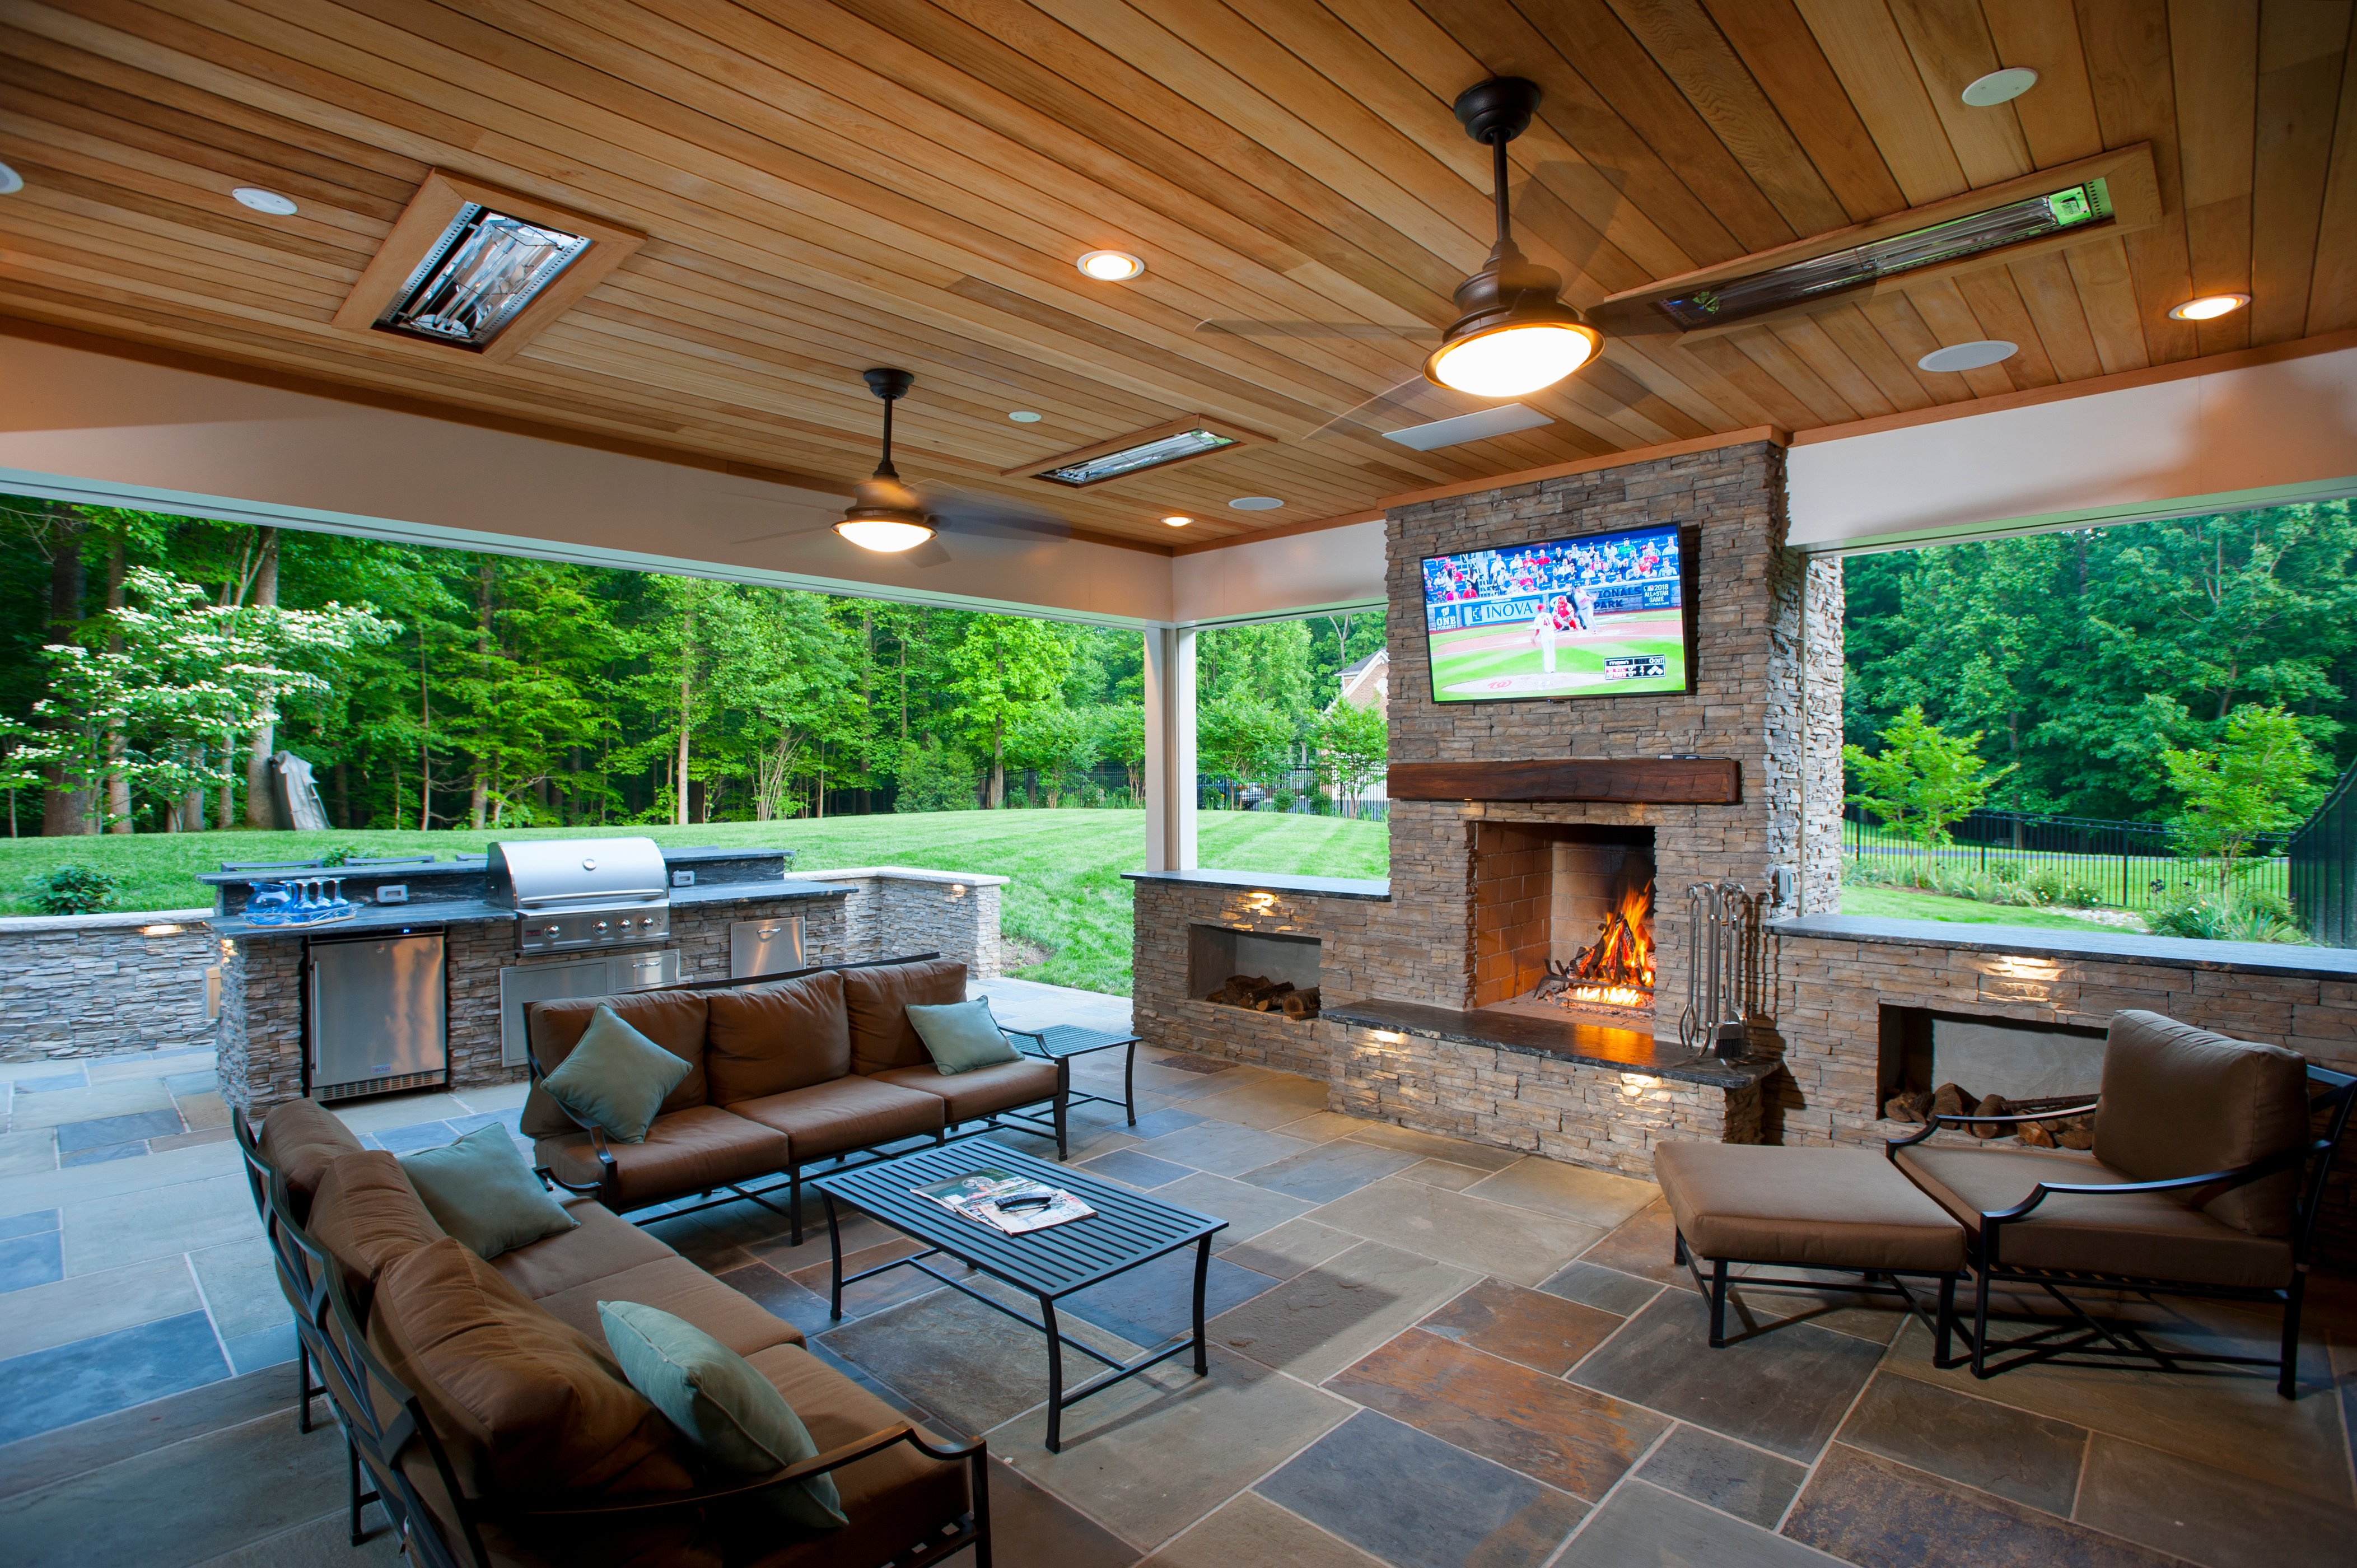 How Much Does It Cost To Build A Fireplace In A Screened In Porch